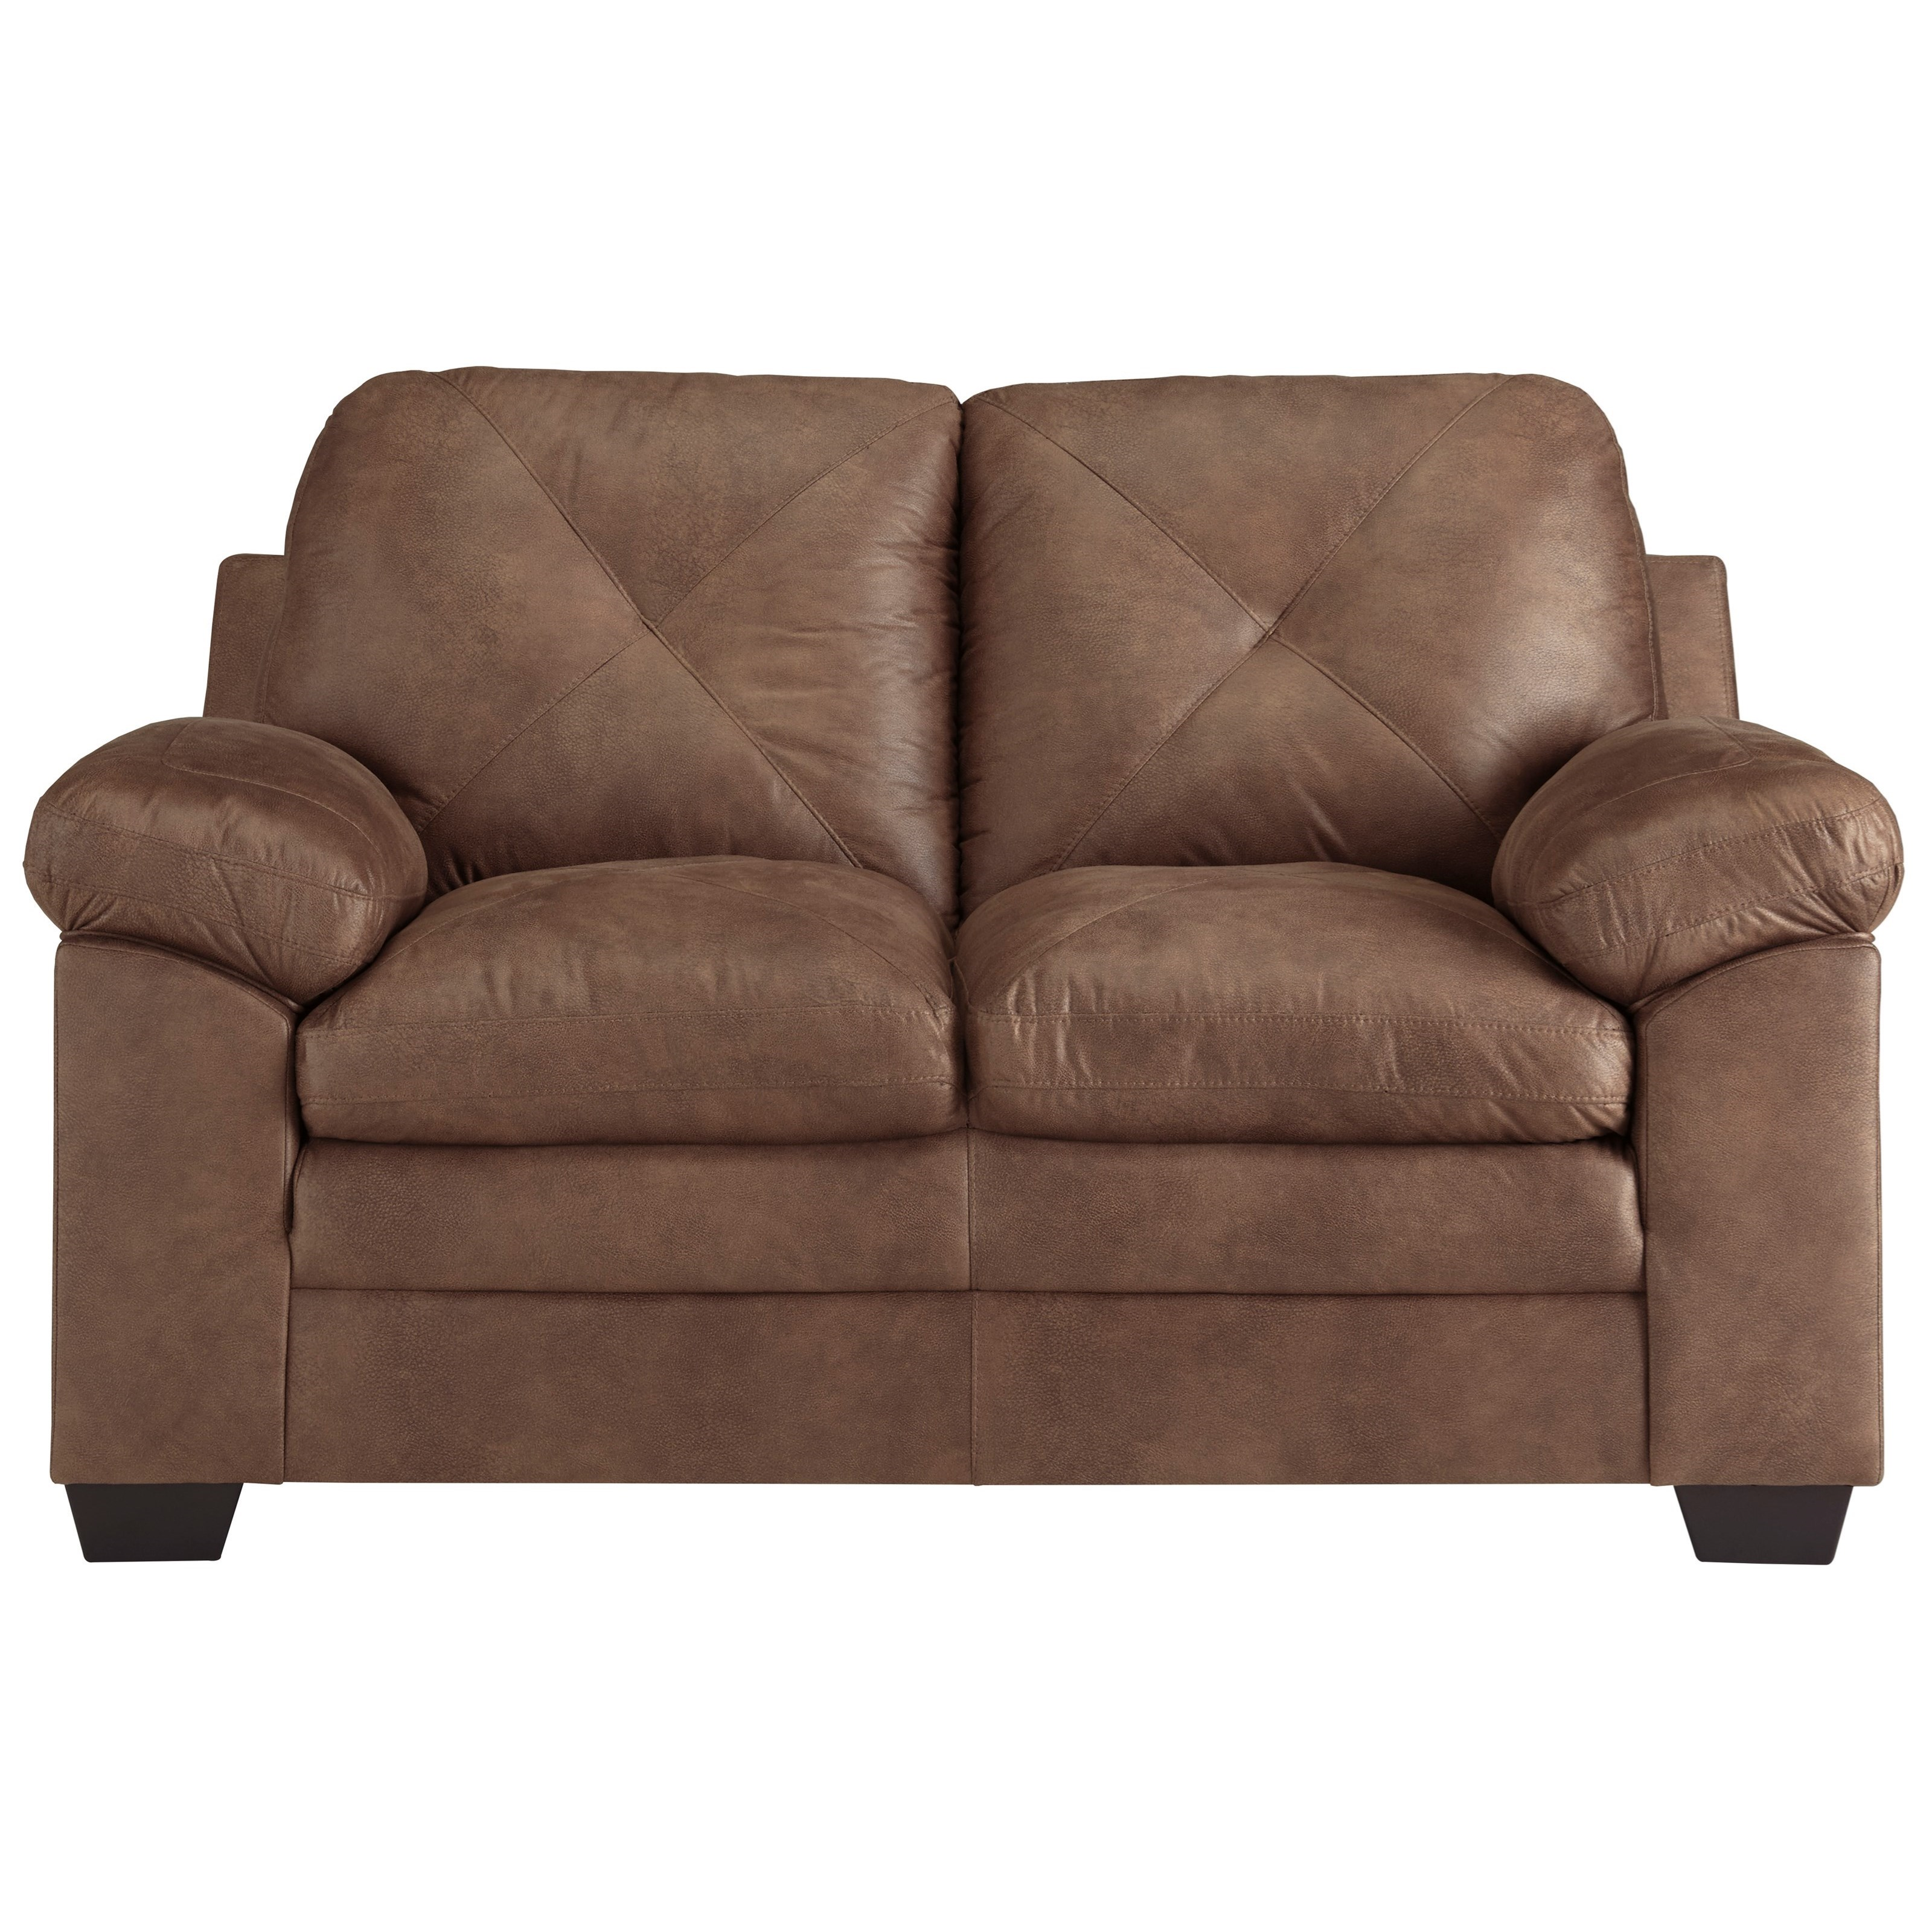 Ashley Furniture Superstore: Signature Design By Ashley Speyer Faux Leather Loveseat